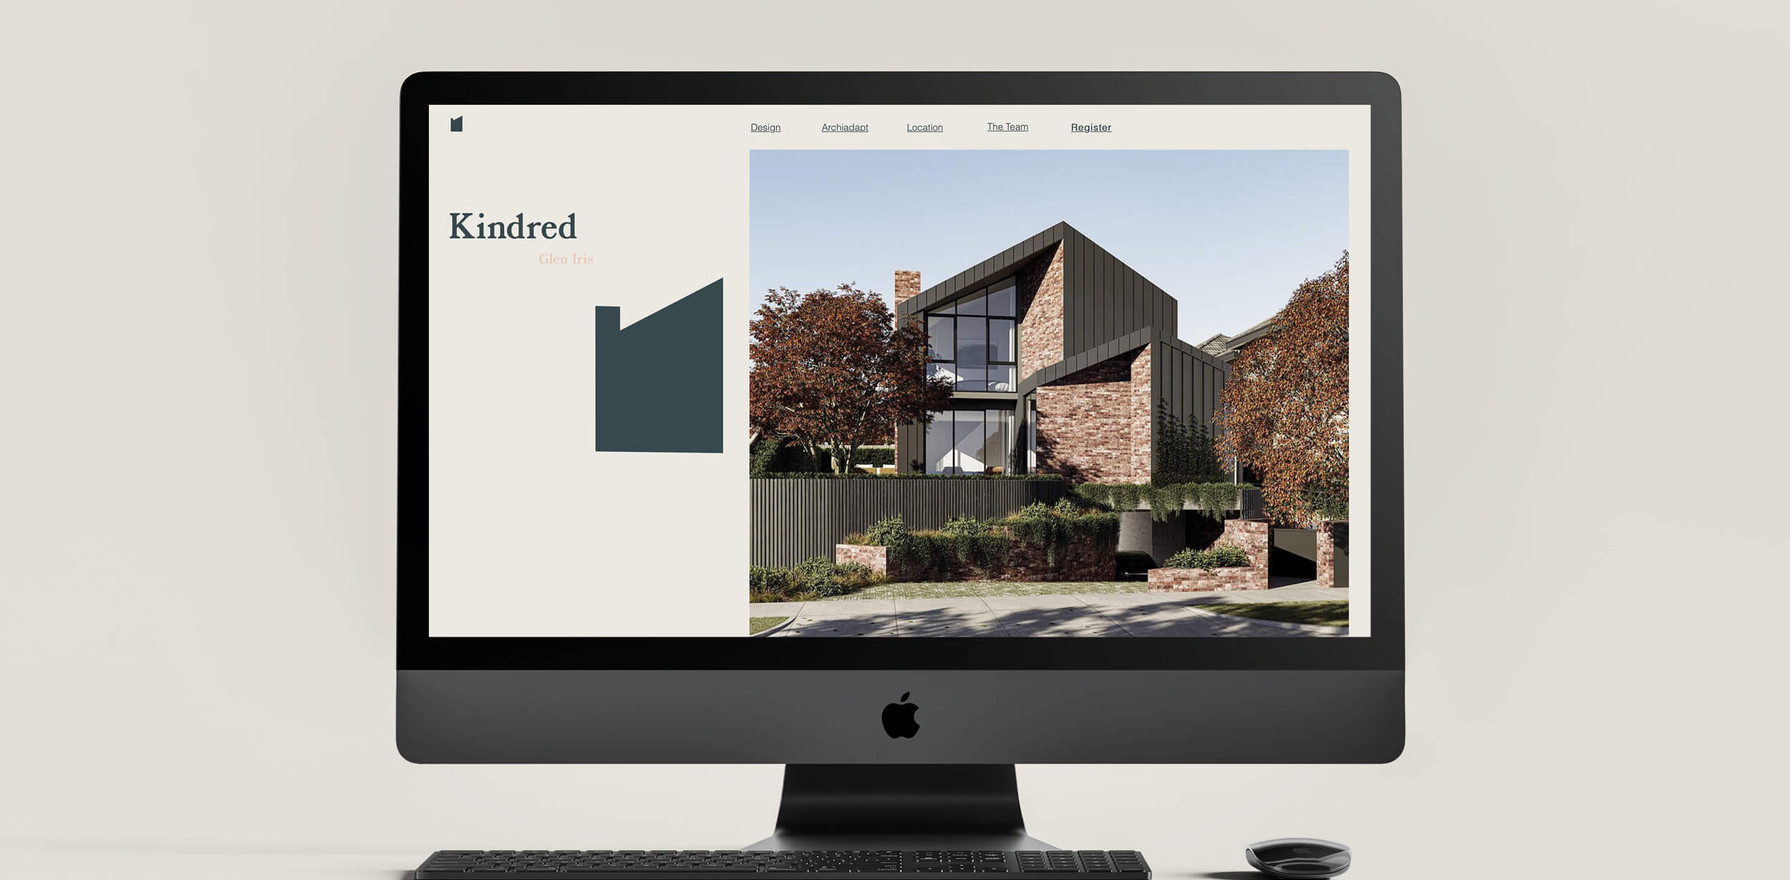 Kindred townhouses are made with adaptable spaces for the changes of ones life and family. We delivered a full campaign launch that included a website, social and advertising accompanying a printed brochure, floor plans and sales presenter.